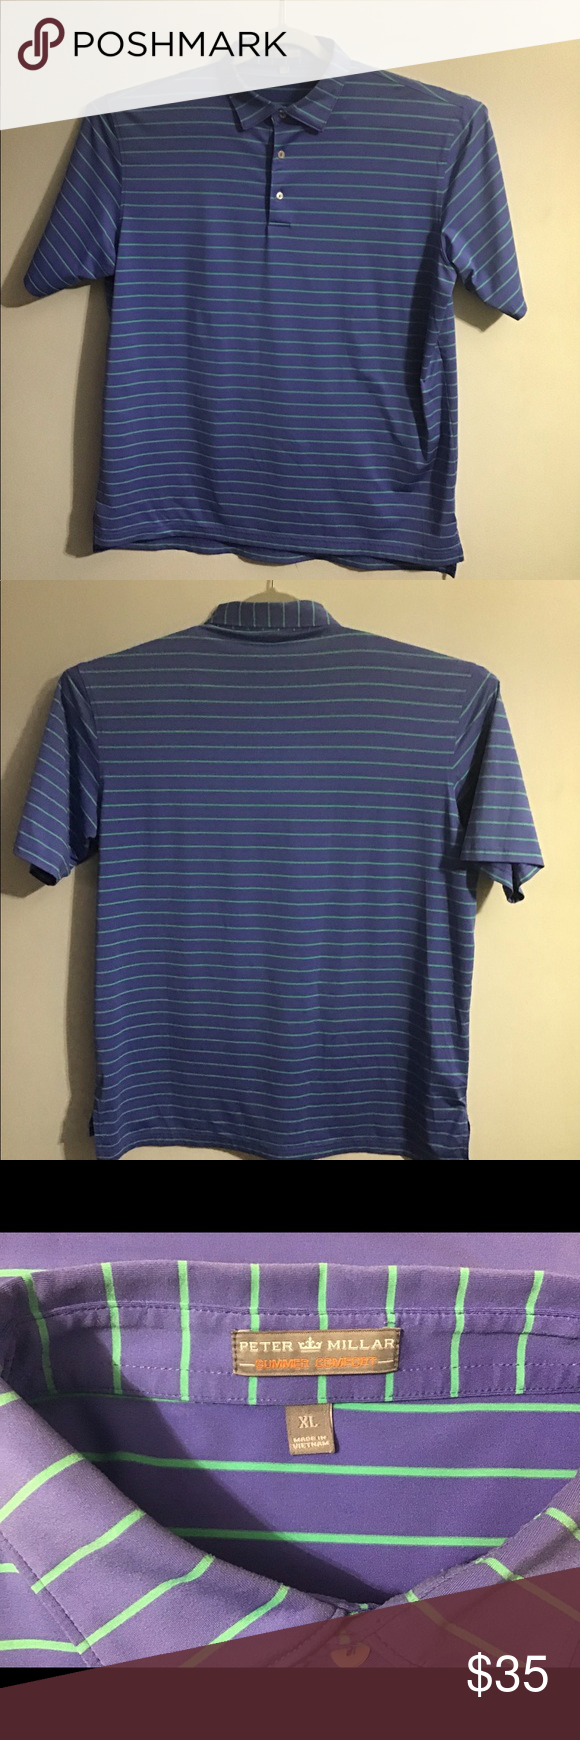 Peter Millar Summer Comfort striped polo. XL in 2020